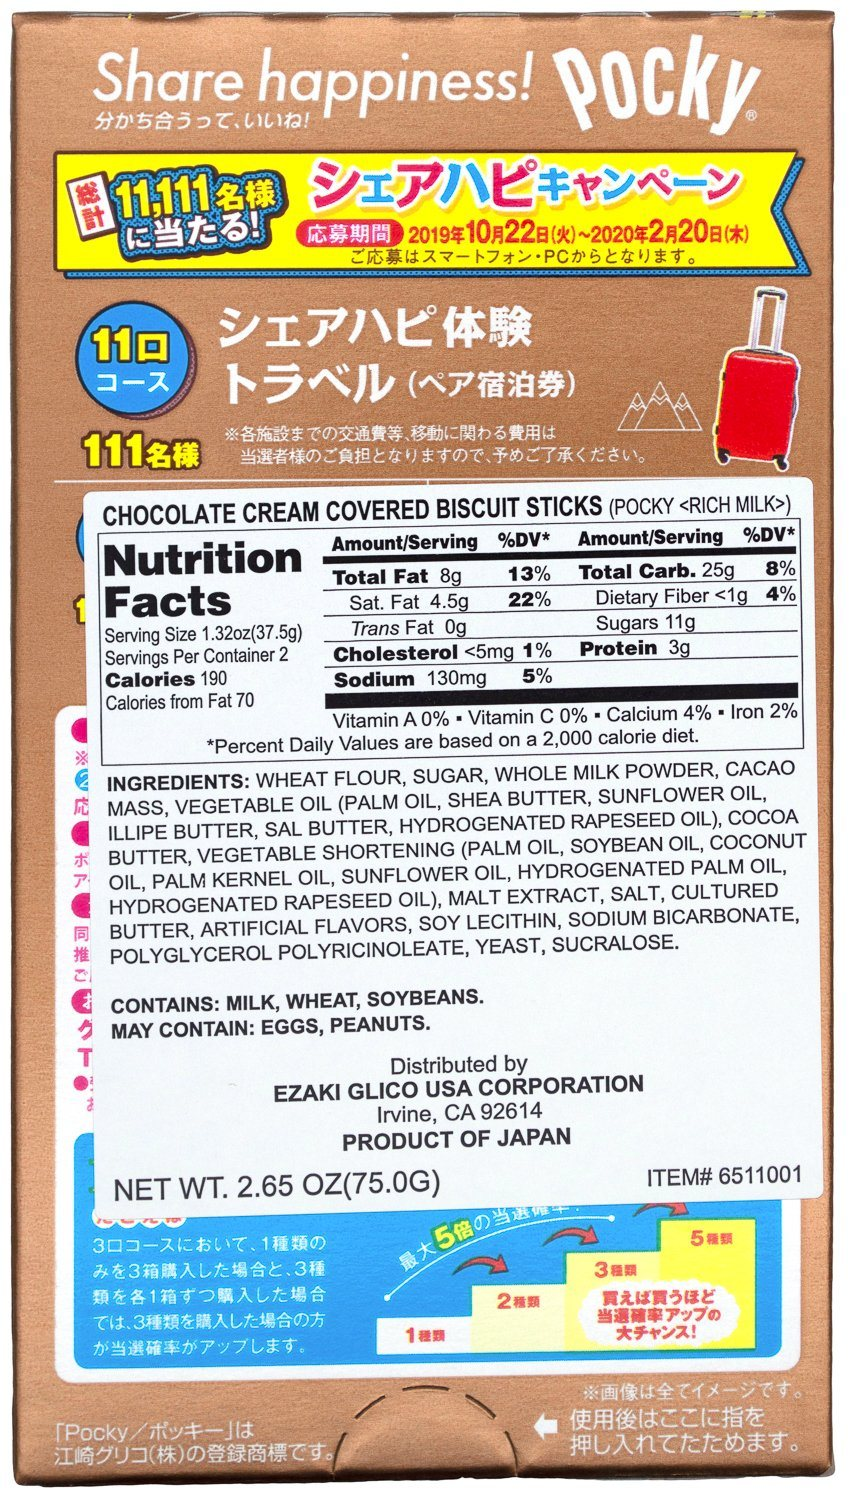 Pocky Cream Covered Biscuit Sticks Glico